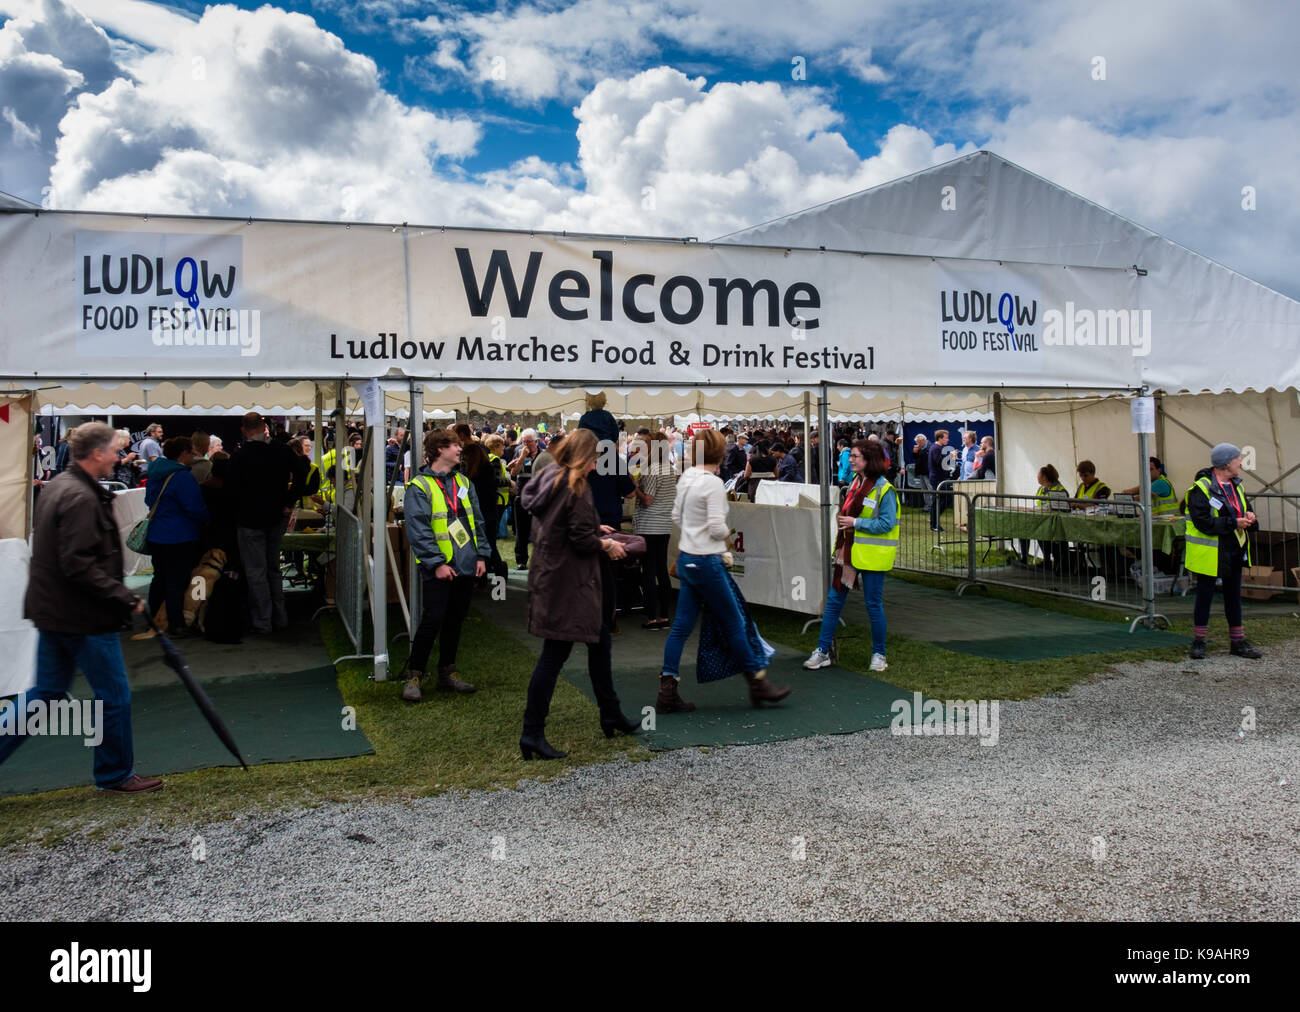 Entrance to the Ludlow Marches Food and Drink Festival, Ludlow Castle, Ludlow, Shropshire, UK - Stock Image